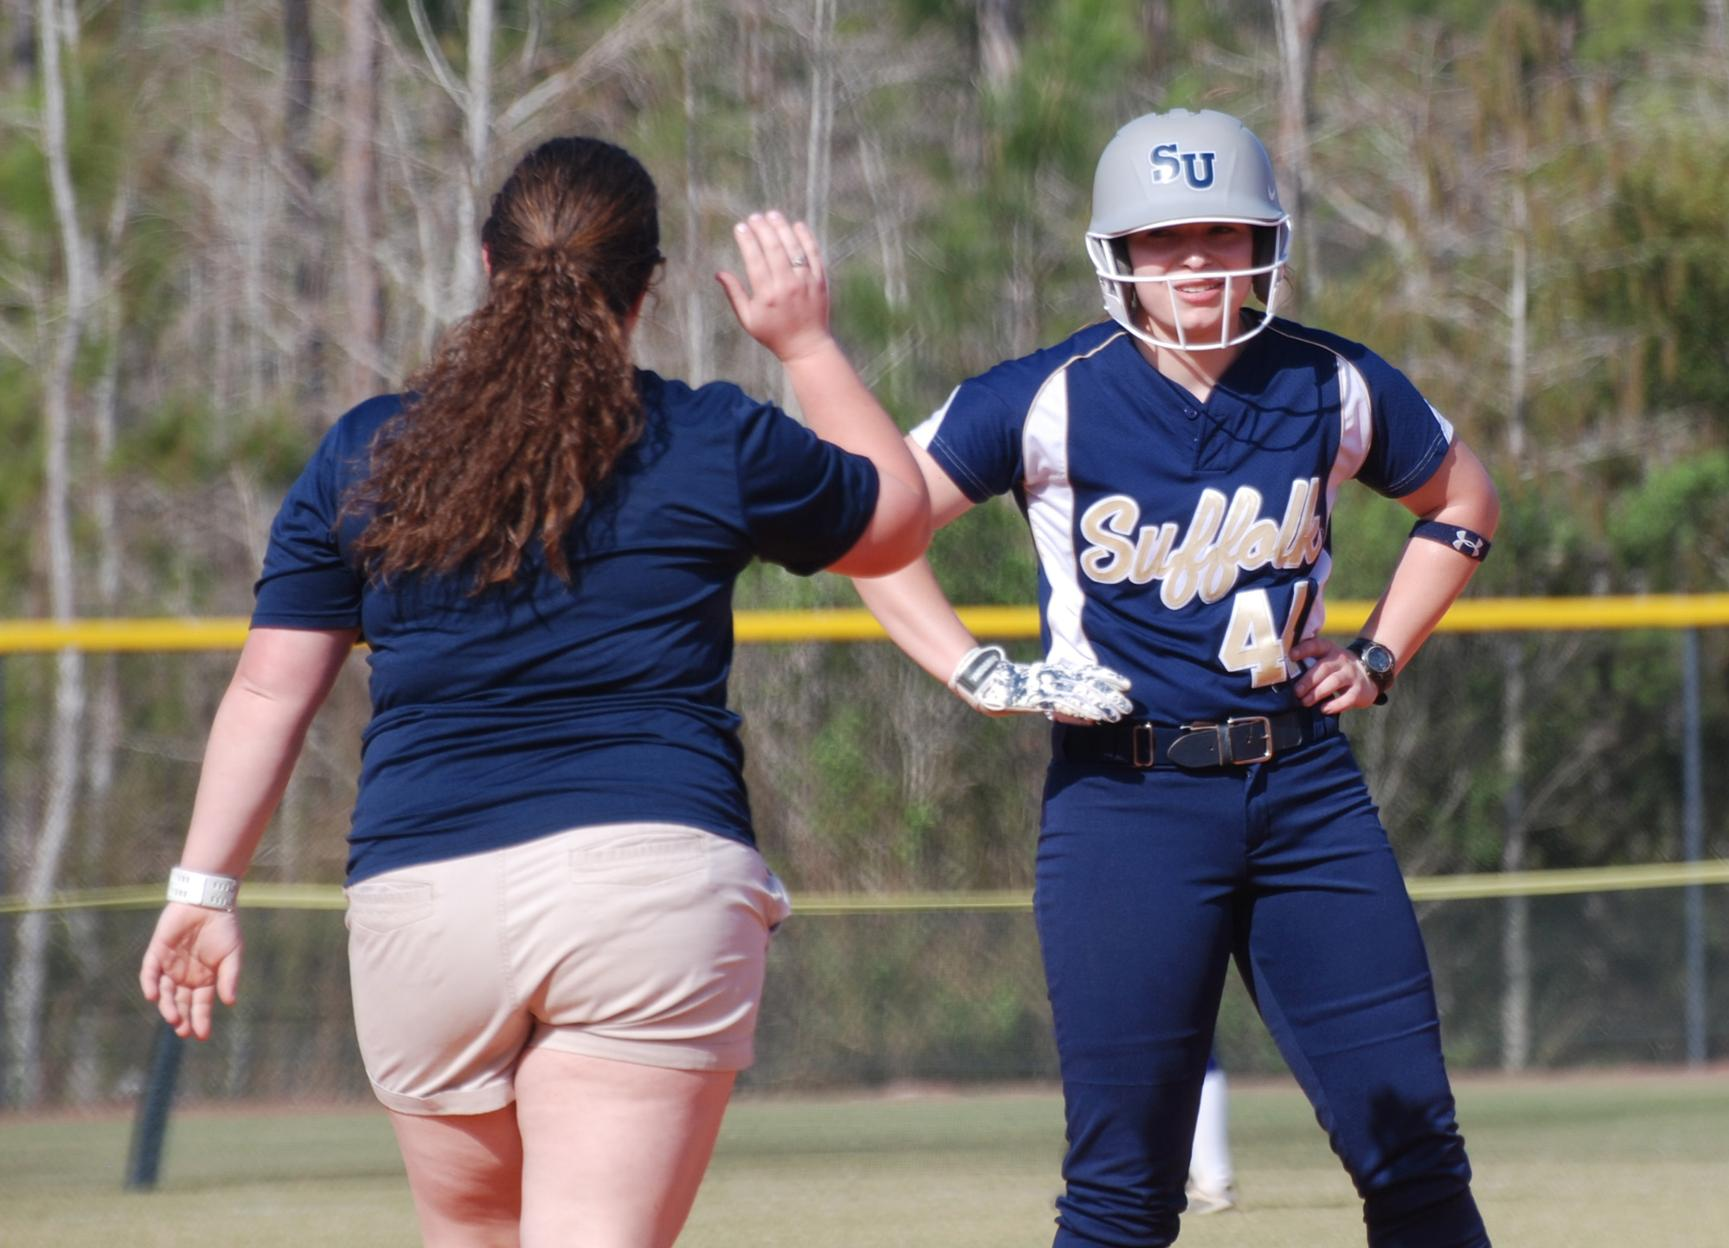 Softball Eliminated From GNAC Tournament After 9-1 Loss to Emmanuel